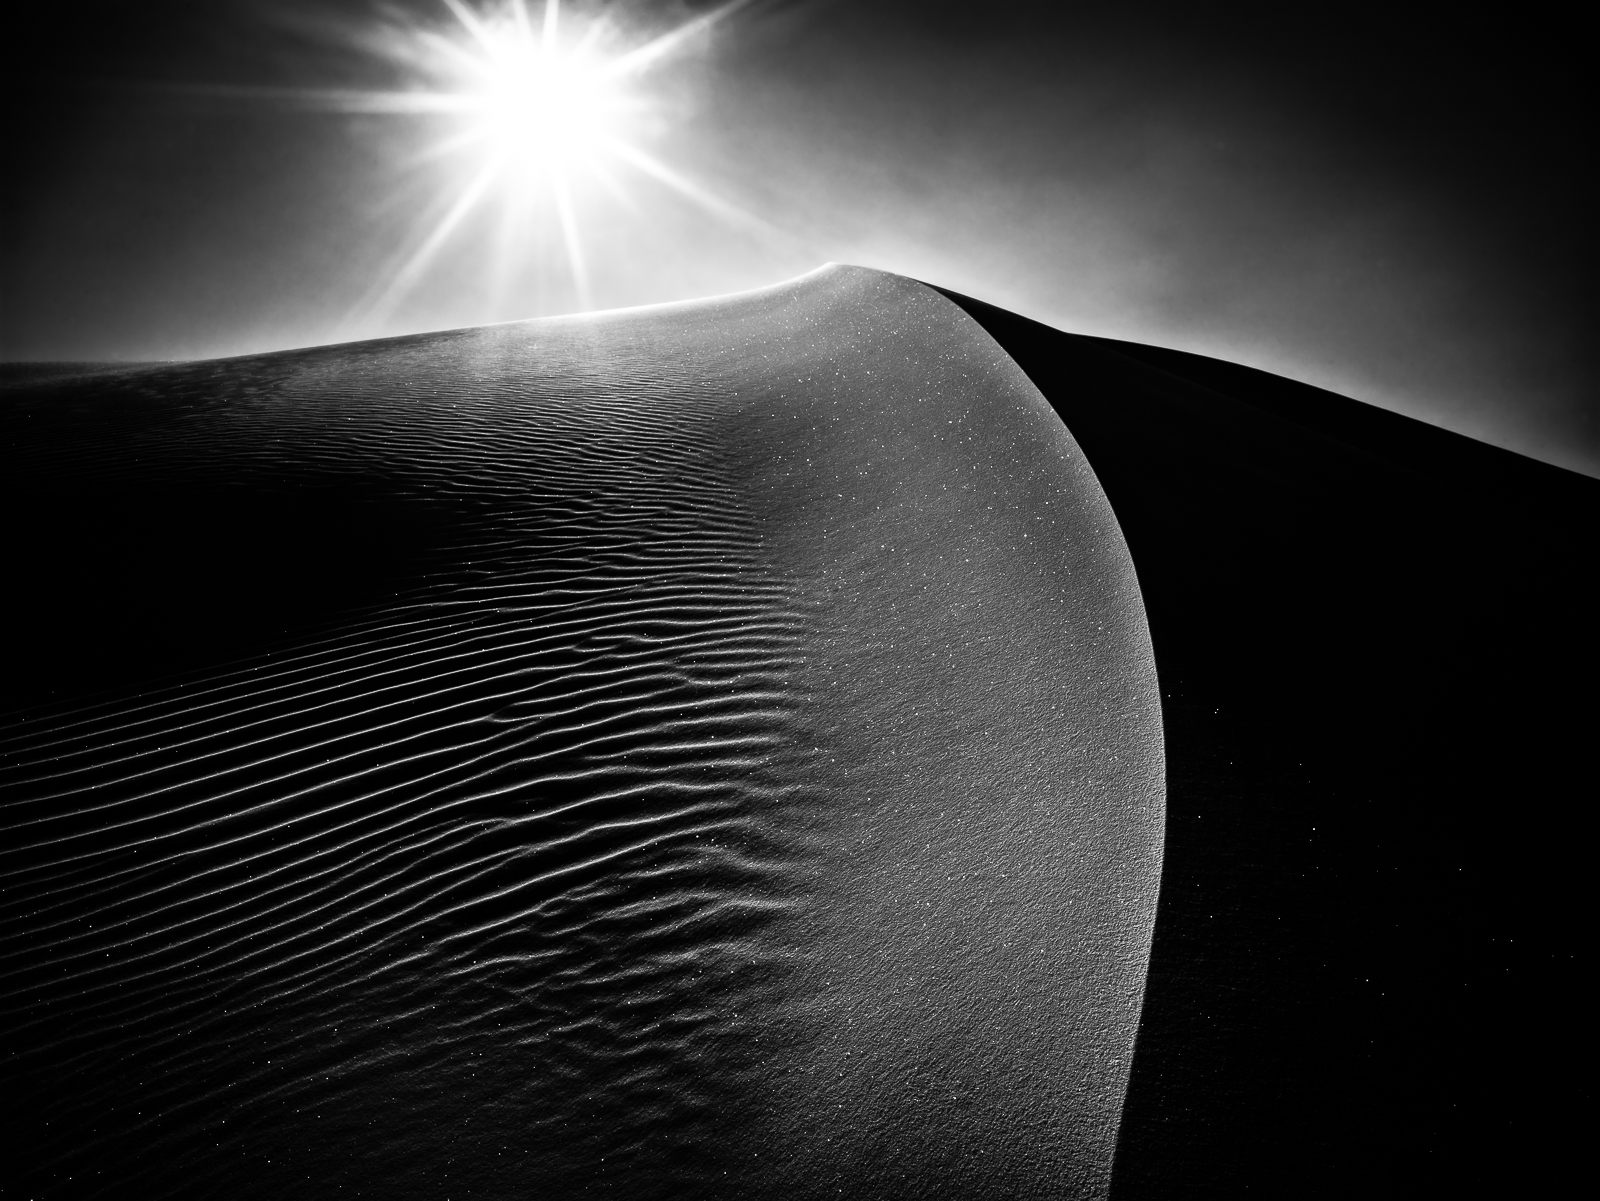 Star Dust, Black and White, Sand dunes, sunset, White Sands National Park, New Mexico, desert, sand, BW, B&W, Black, White, photo